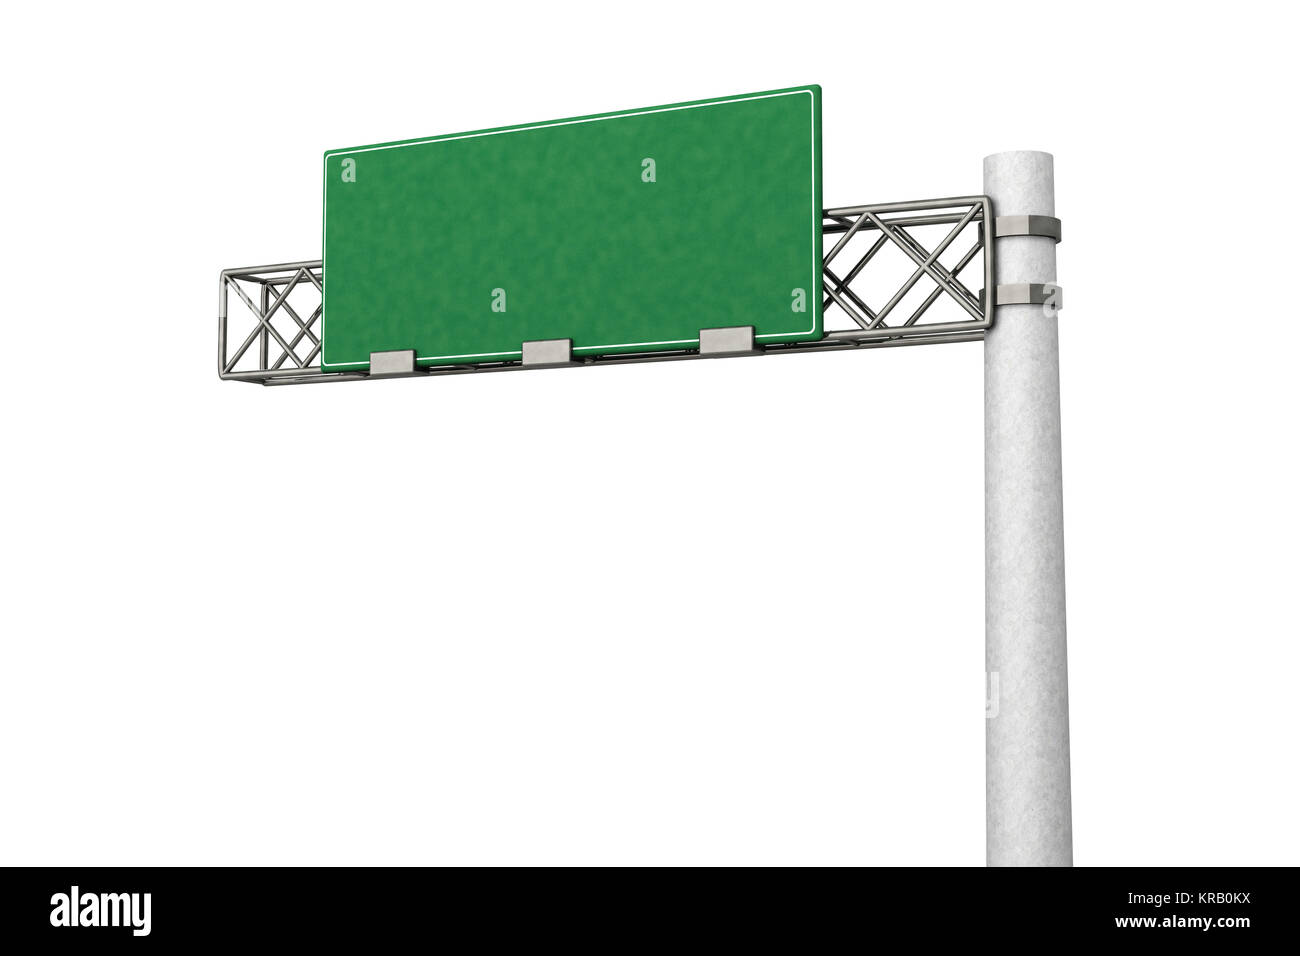 3D rendered Illustration. A empty Highway Sign. - Stock Image